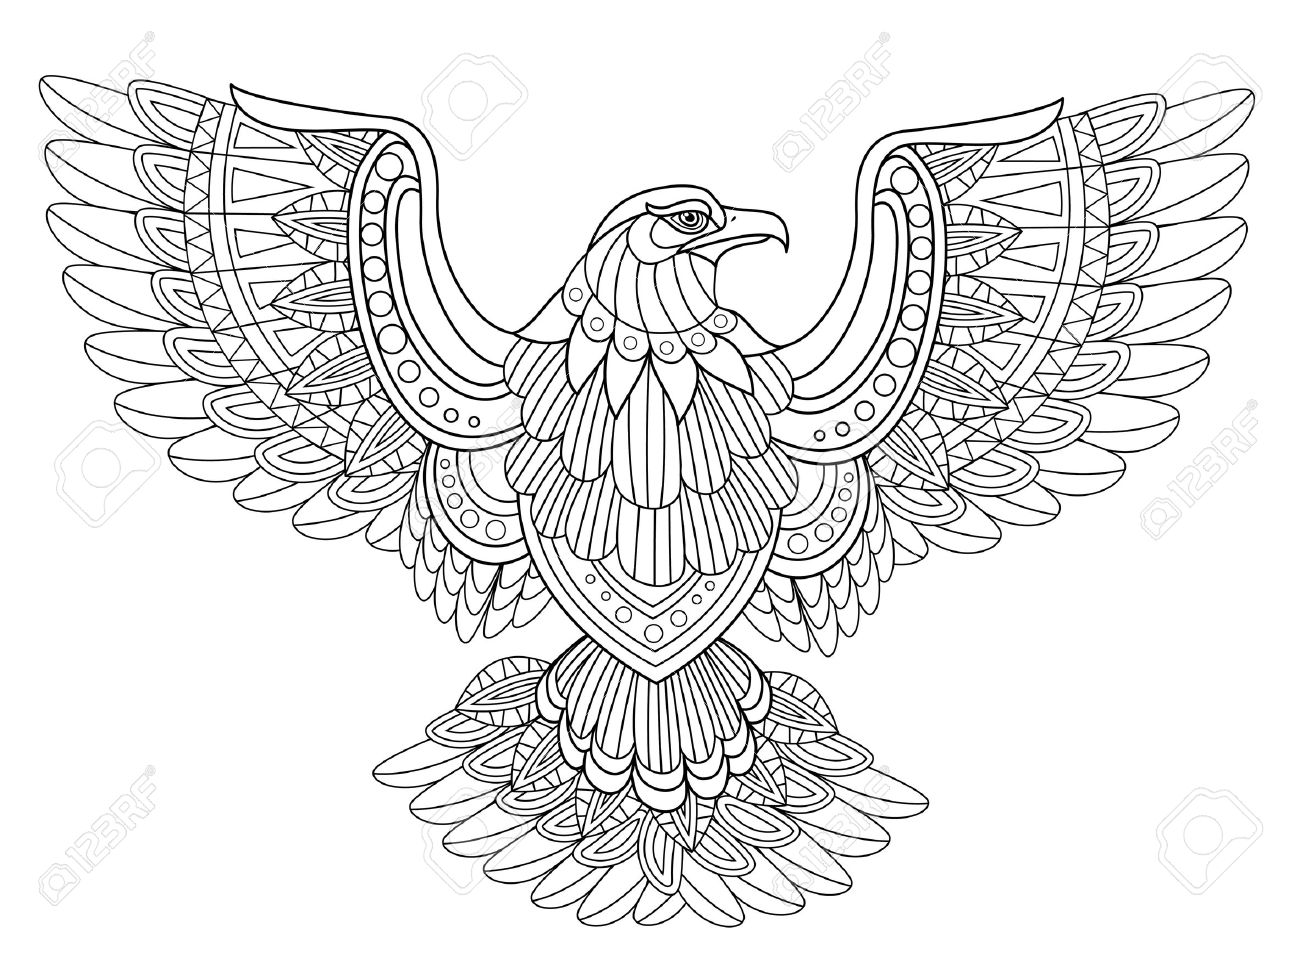 flying eagle coloring page in exquisite style stock vector 46041488 - Coloring Page Eagle